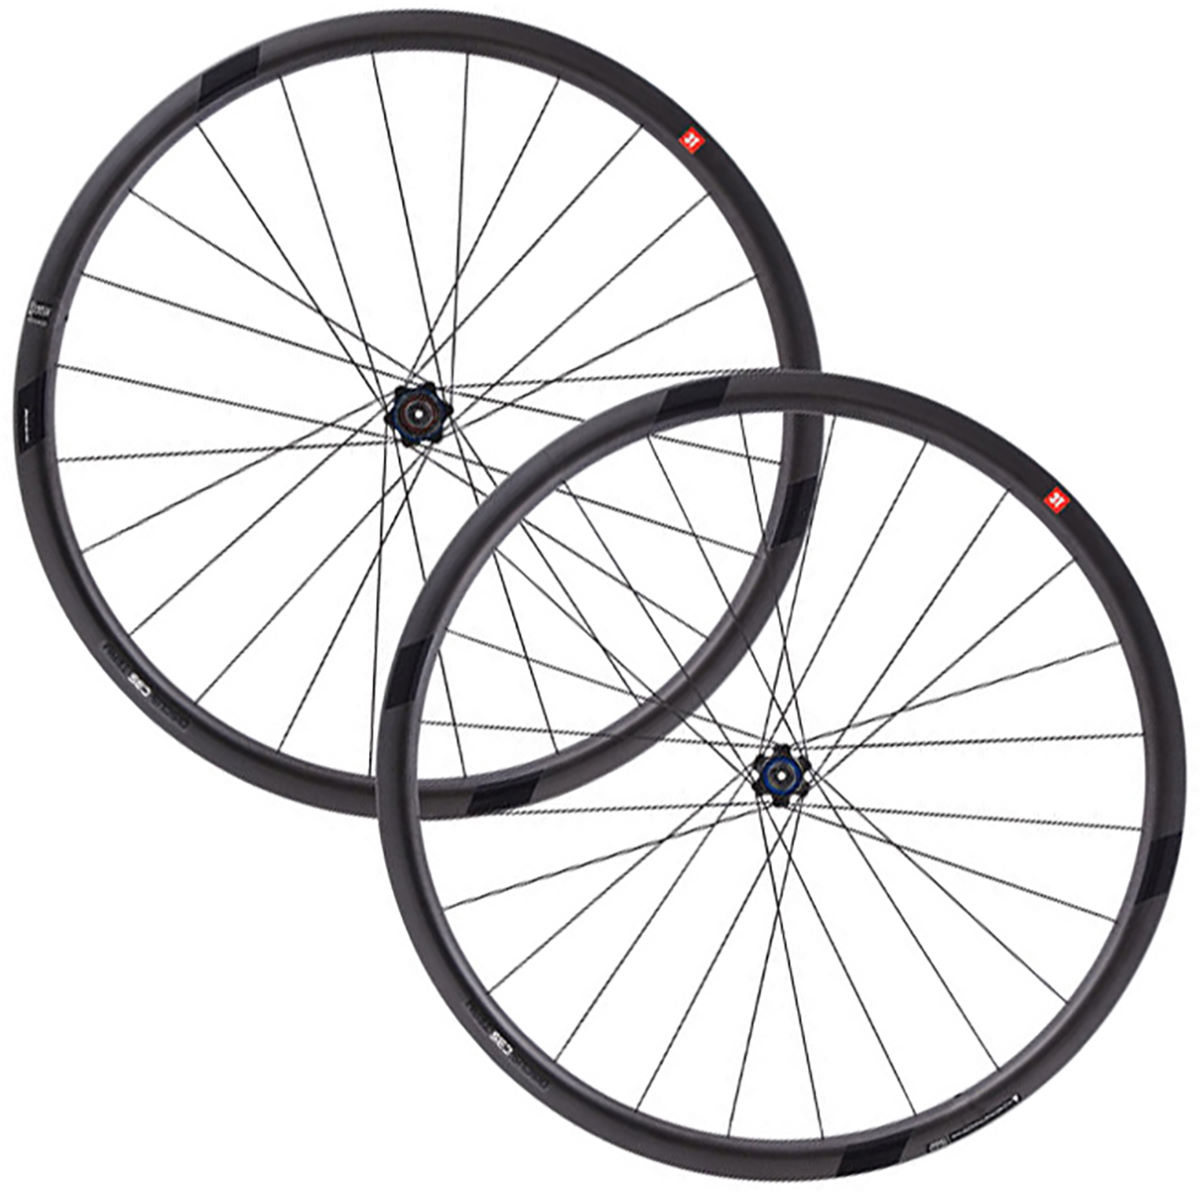 3T 3T Discus C35 Team Stealth Wheelset   Wheel Sets